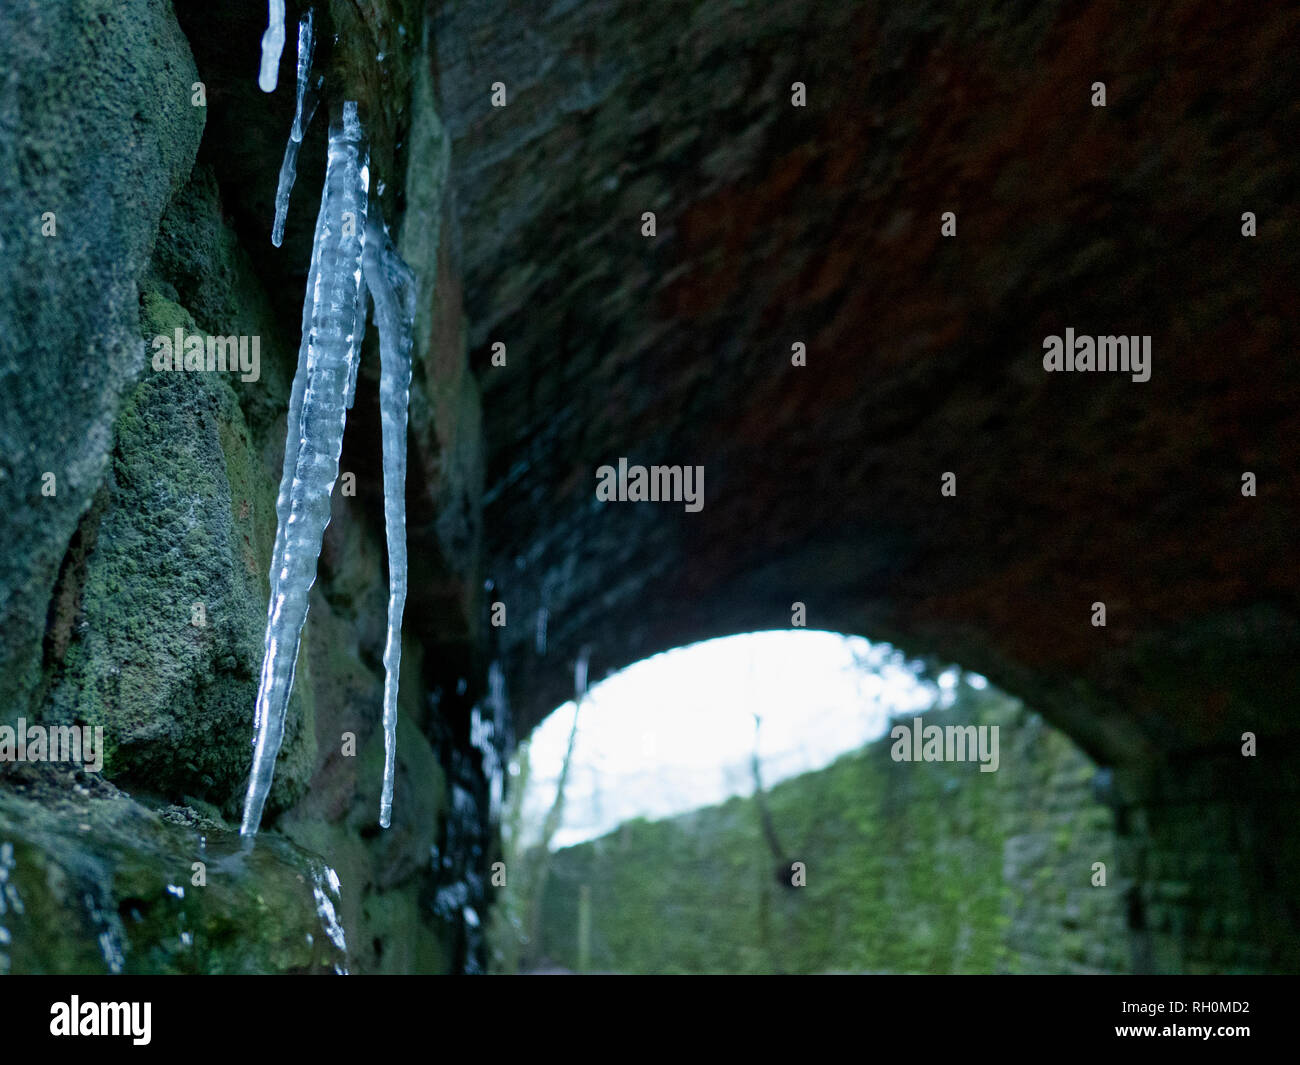 Wirksworth, Derbyshire Dales, UK. 31st January, 2019. UK Weather: Foot long icicles dangling inside an old mining incline railway bridge on a very cold winter day, The National Stone Centre, Wirksworth, Derbyshire Dales Credit: Doug Blane/Alamy Live News Stock Photo